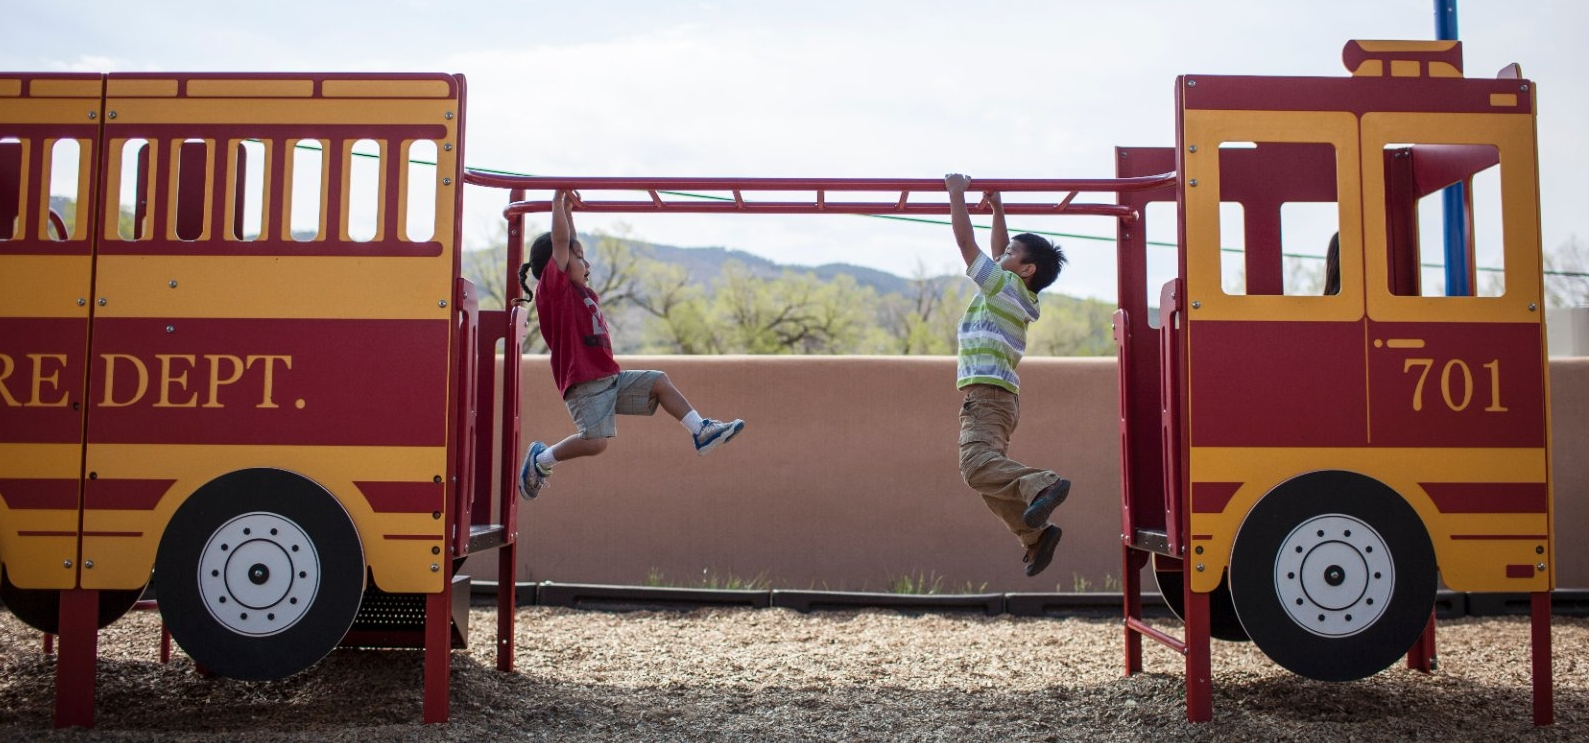 Children play in park in Taos, New Mexico.